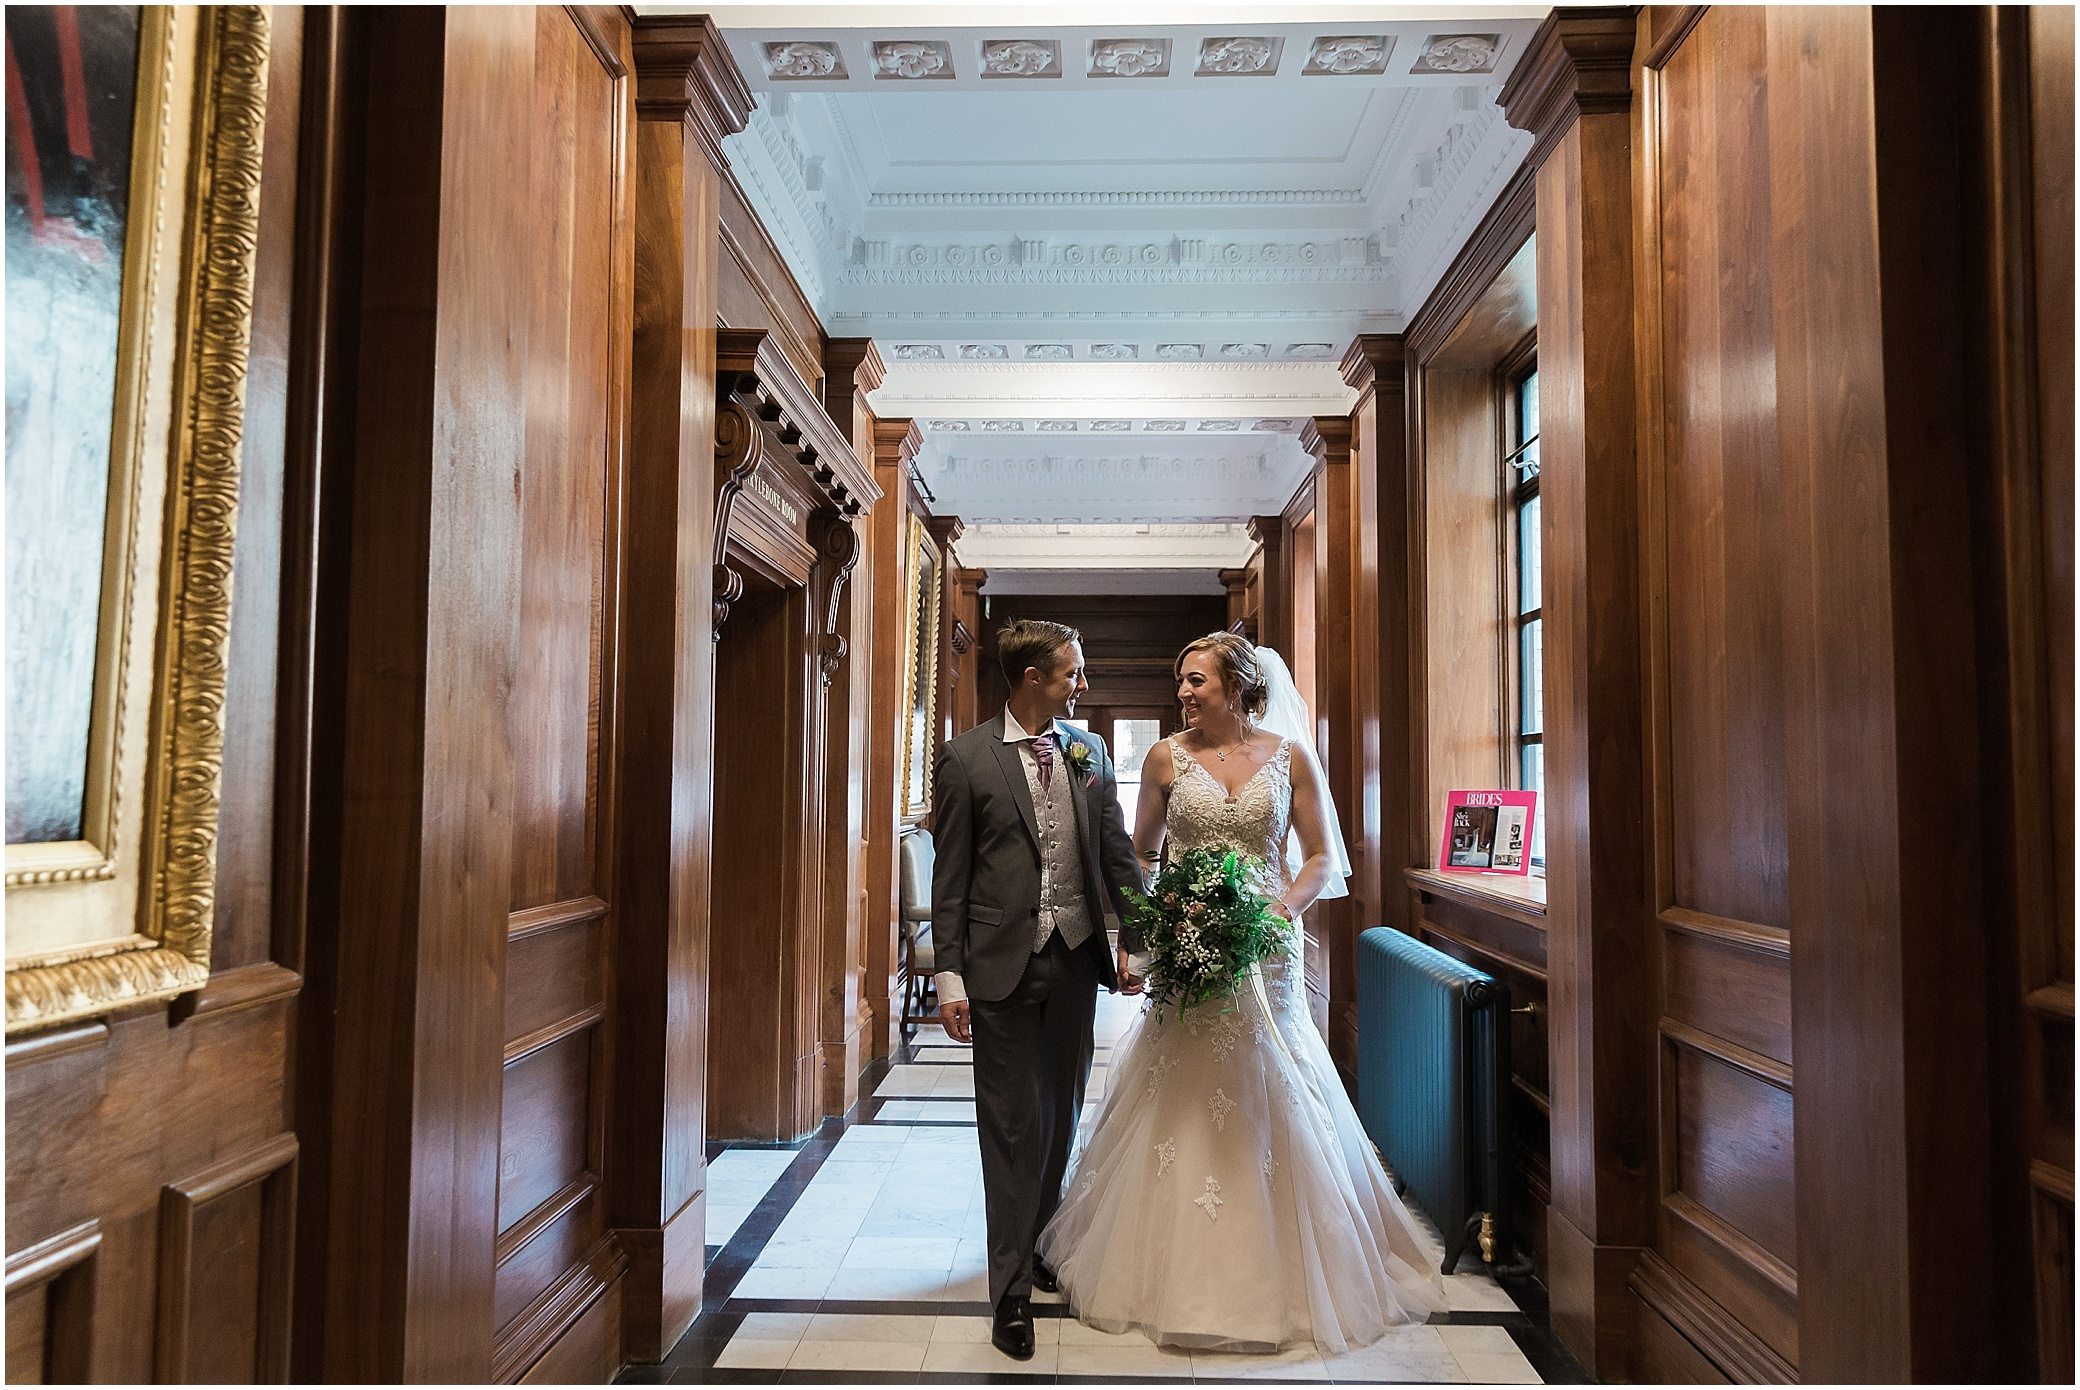 Couple just married in the Knightsbridge room at Marylebone town hall in London